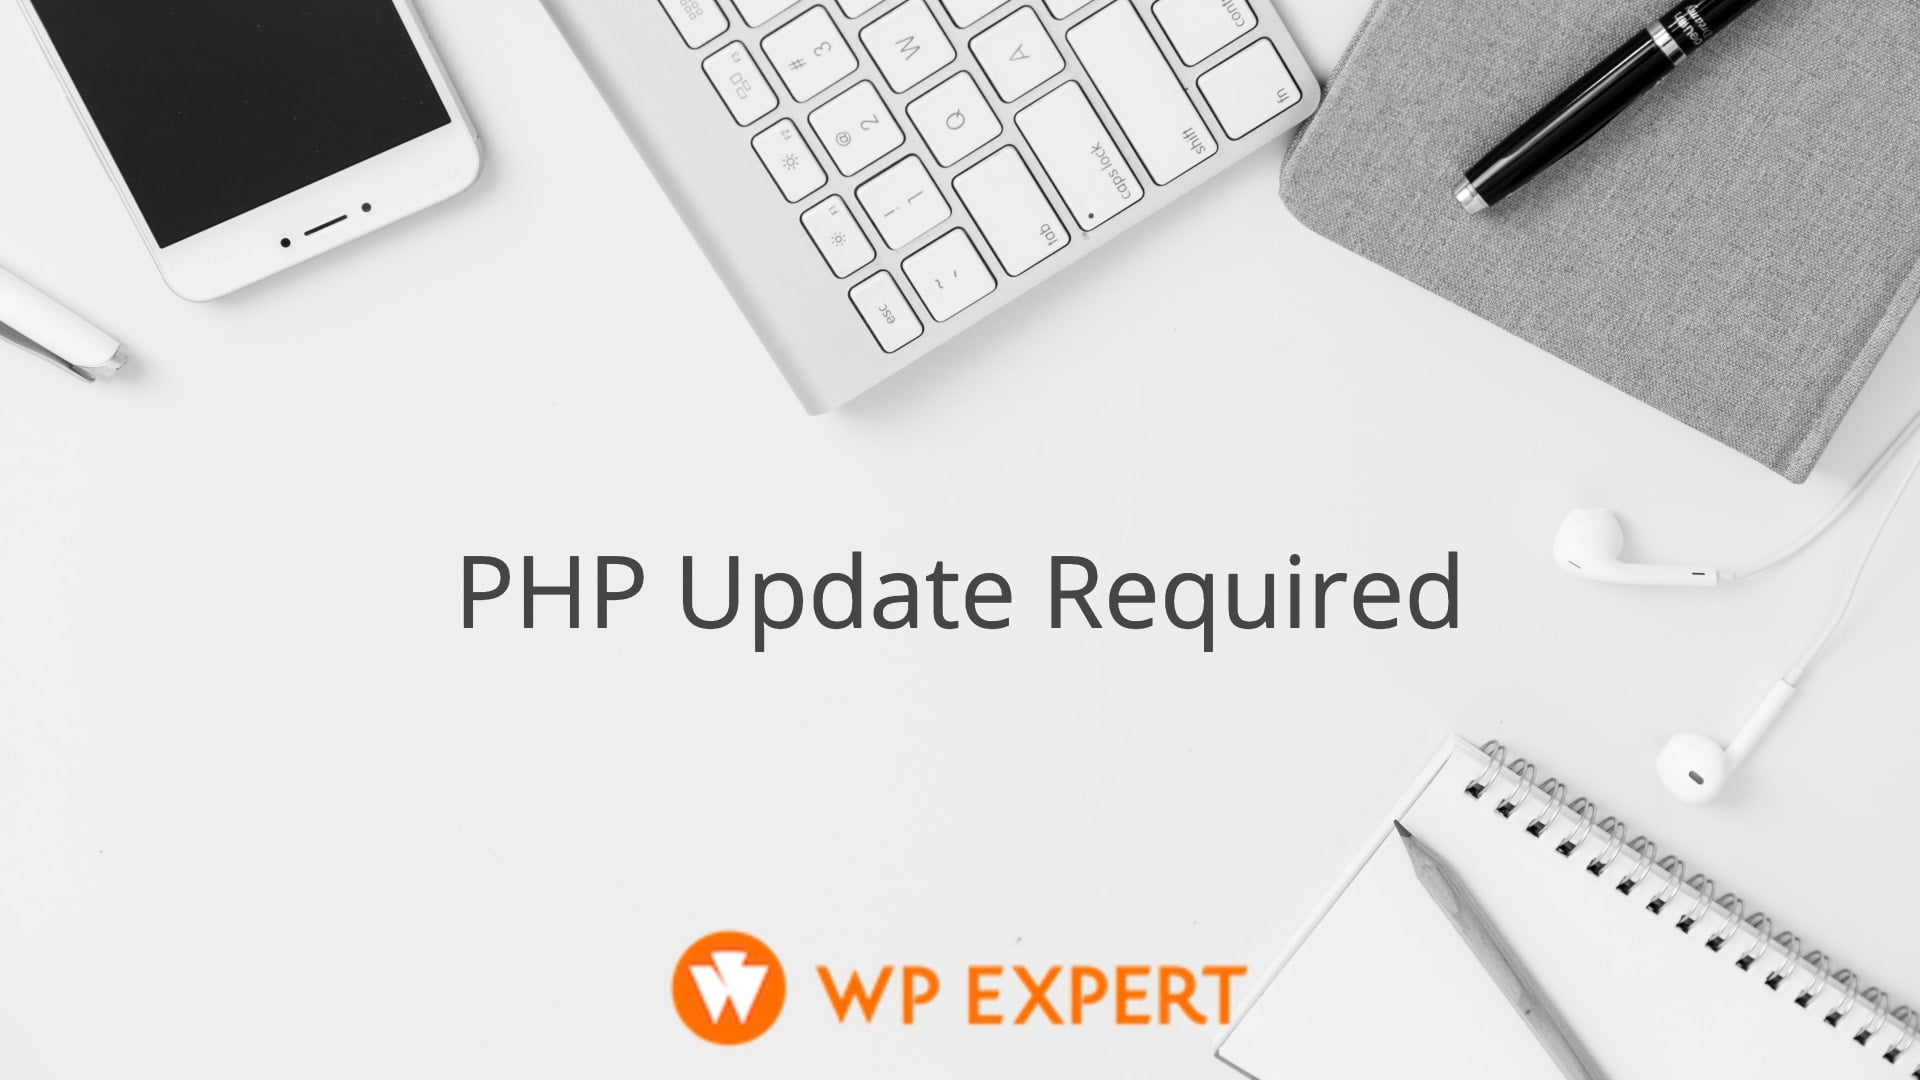 PHP Update Required